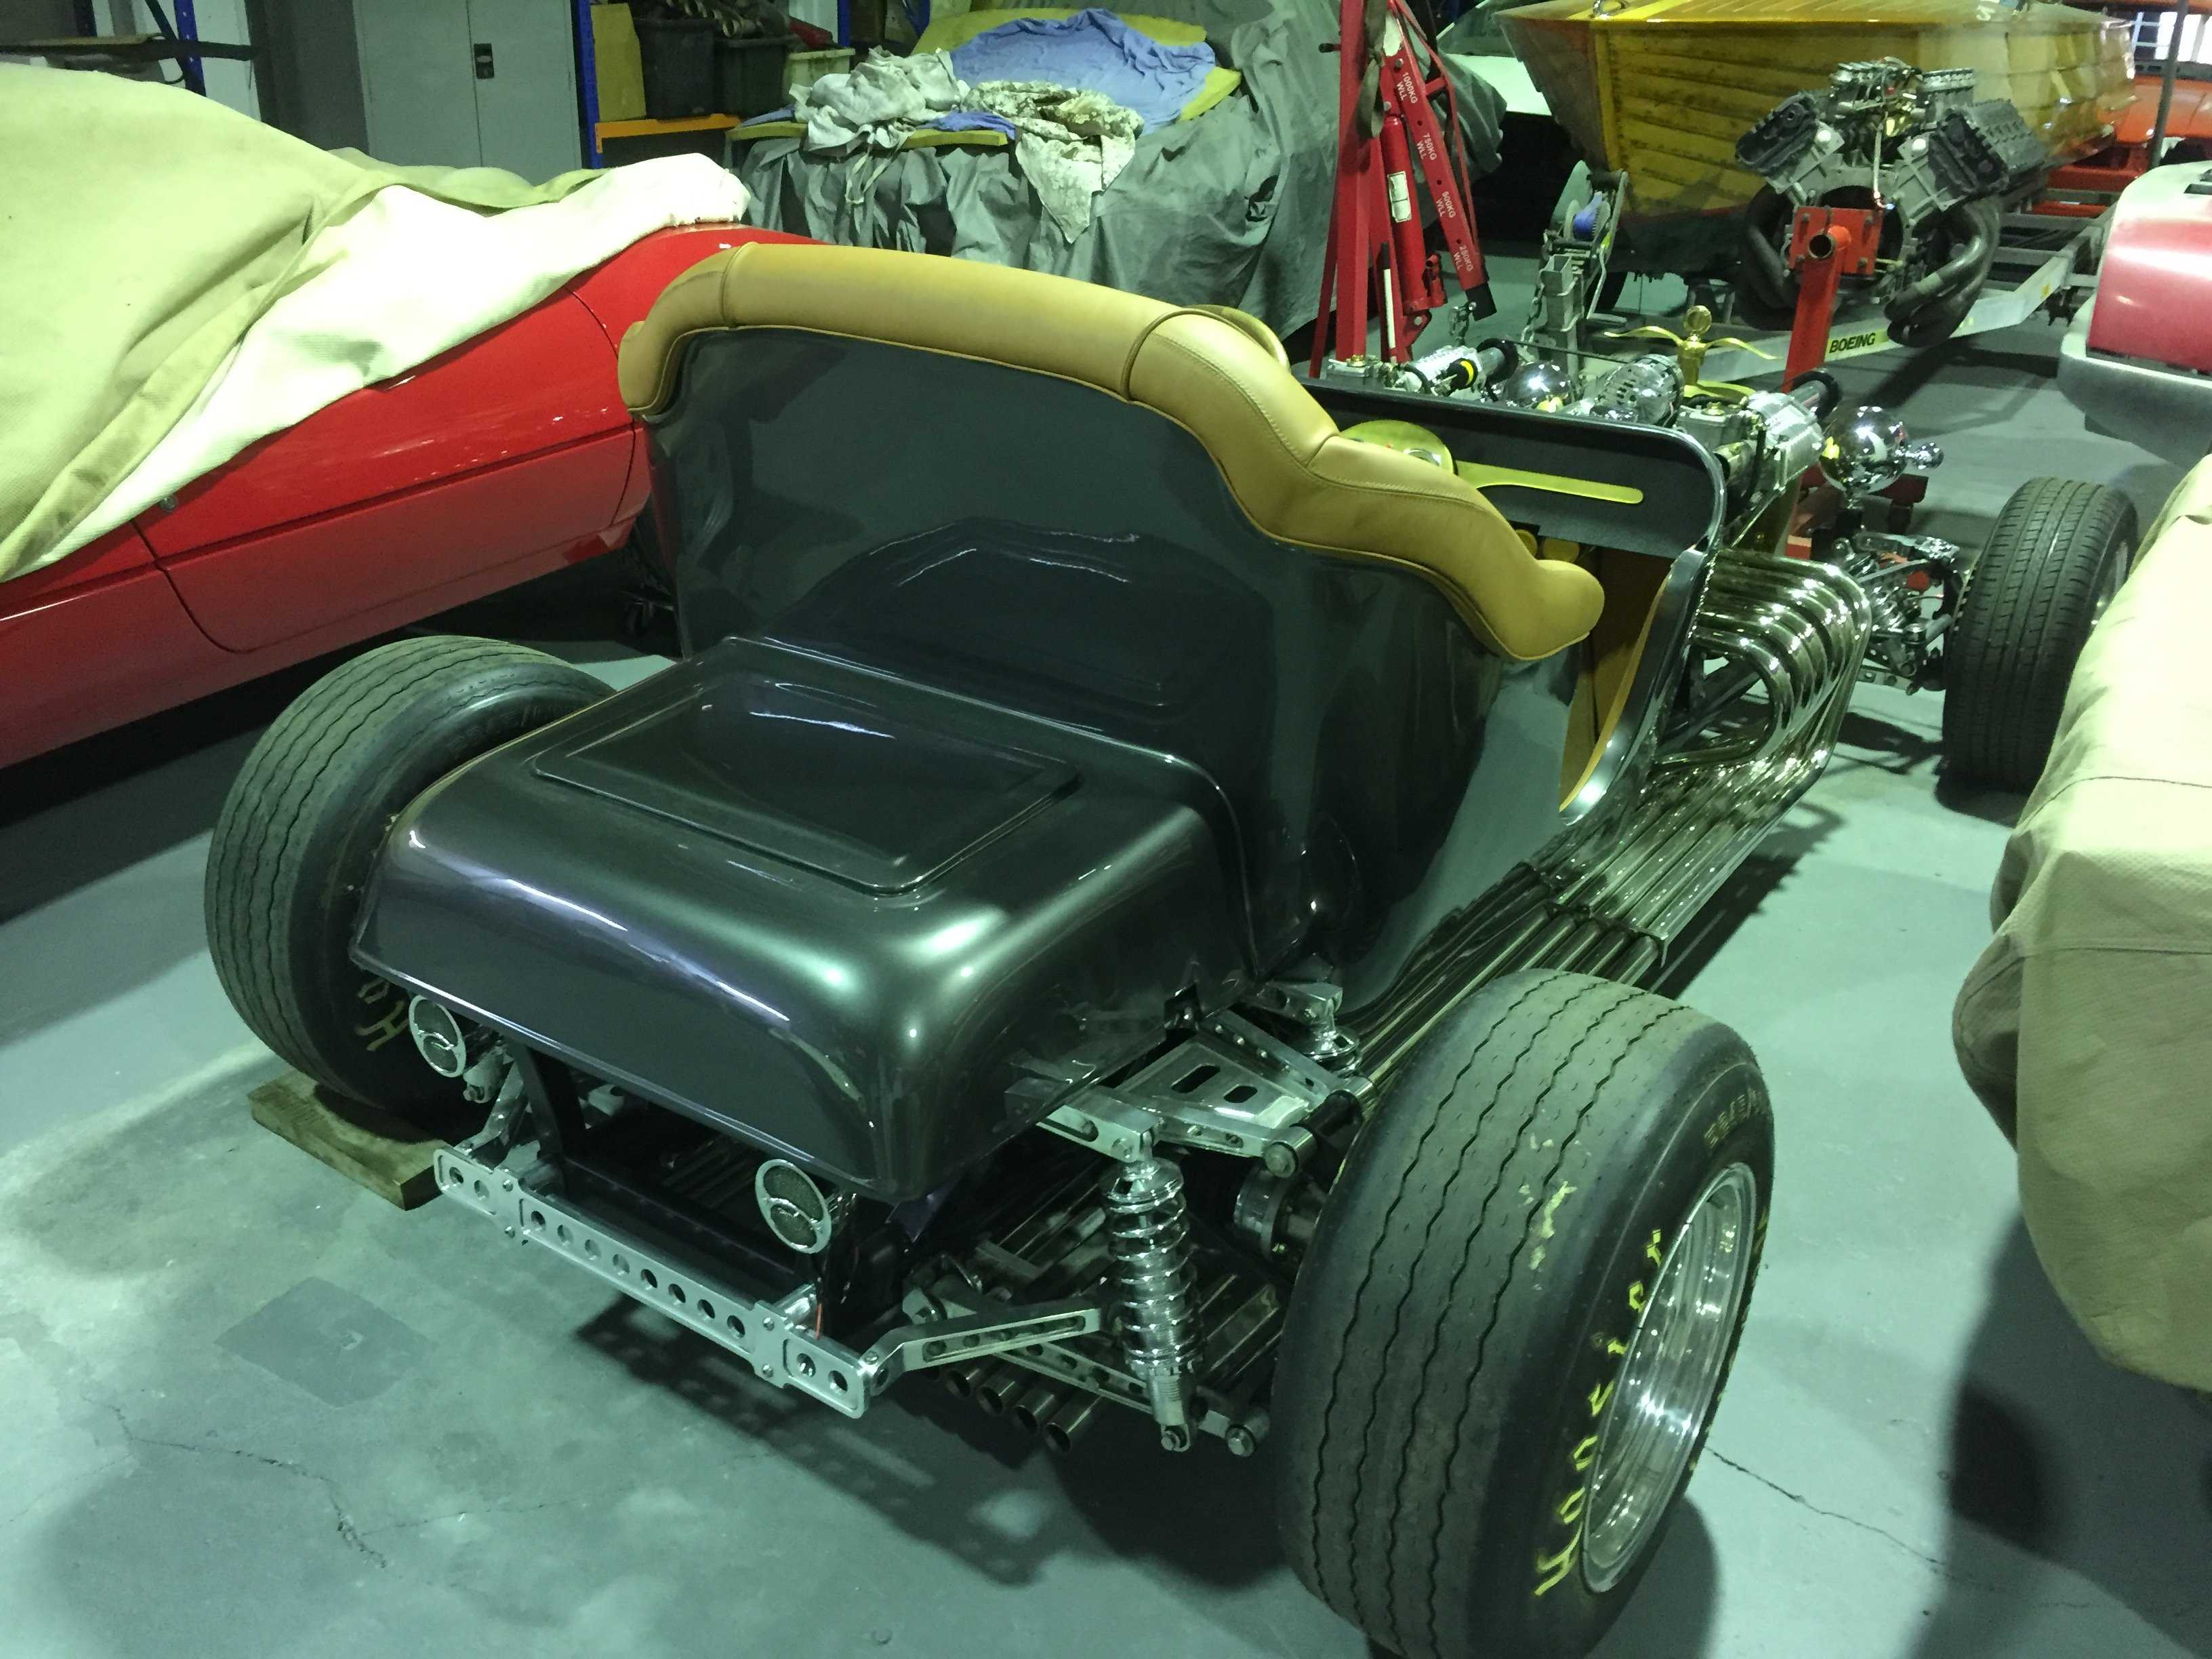 This Twin Supercharged, Ferrari- V12-Powered T Bucket Ain't Your Typical Street Rod